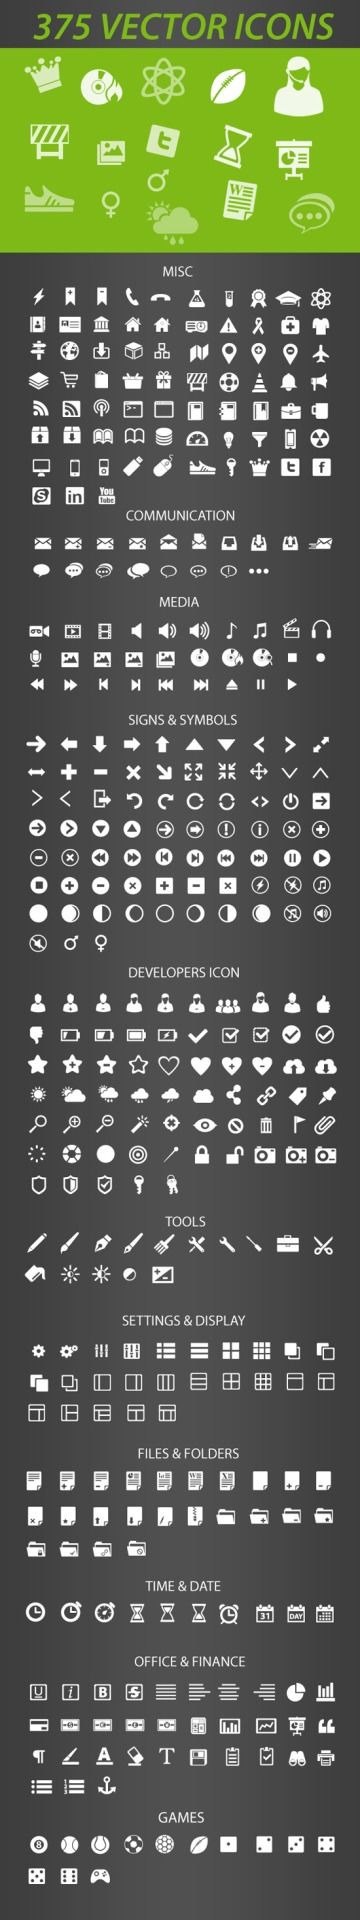 375 Retina-Display-Ready Free Icons